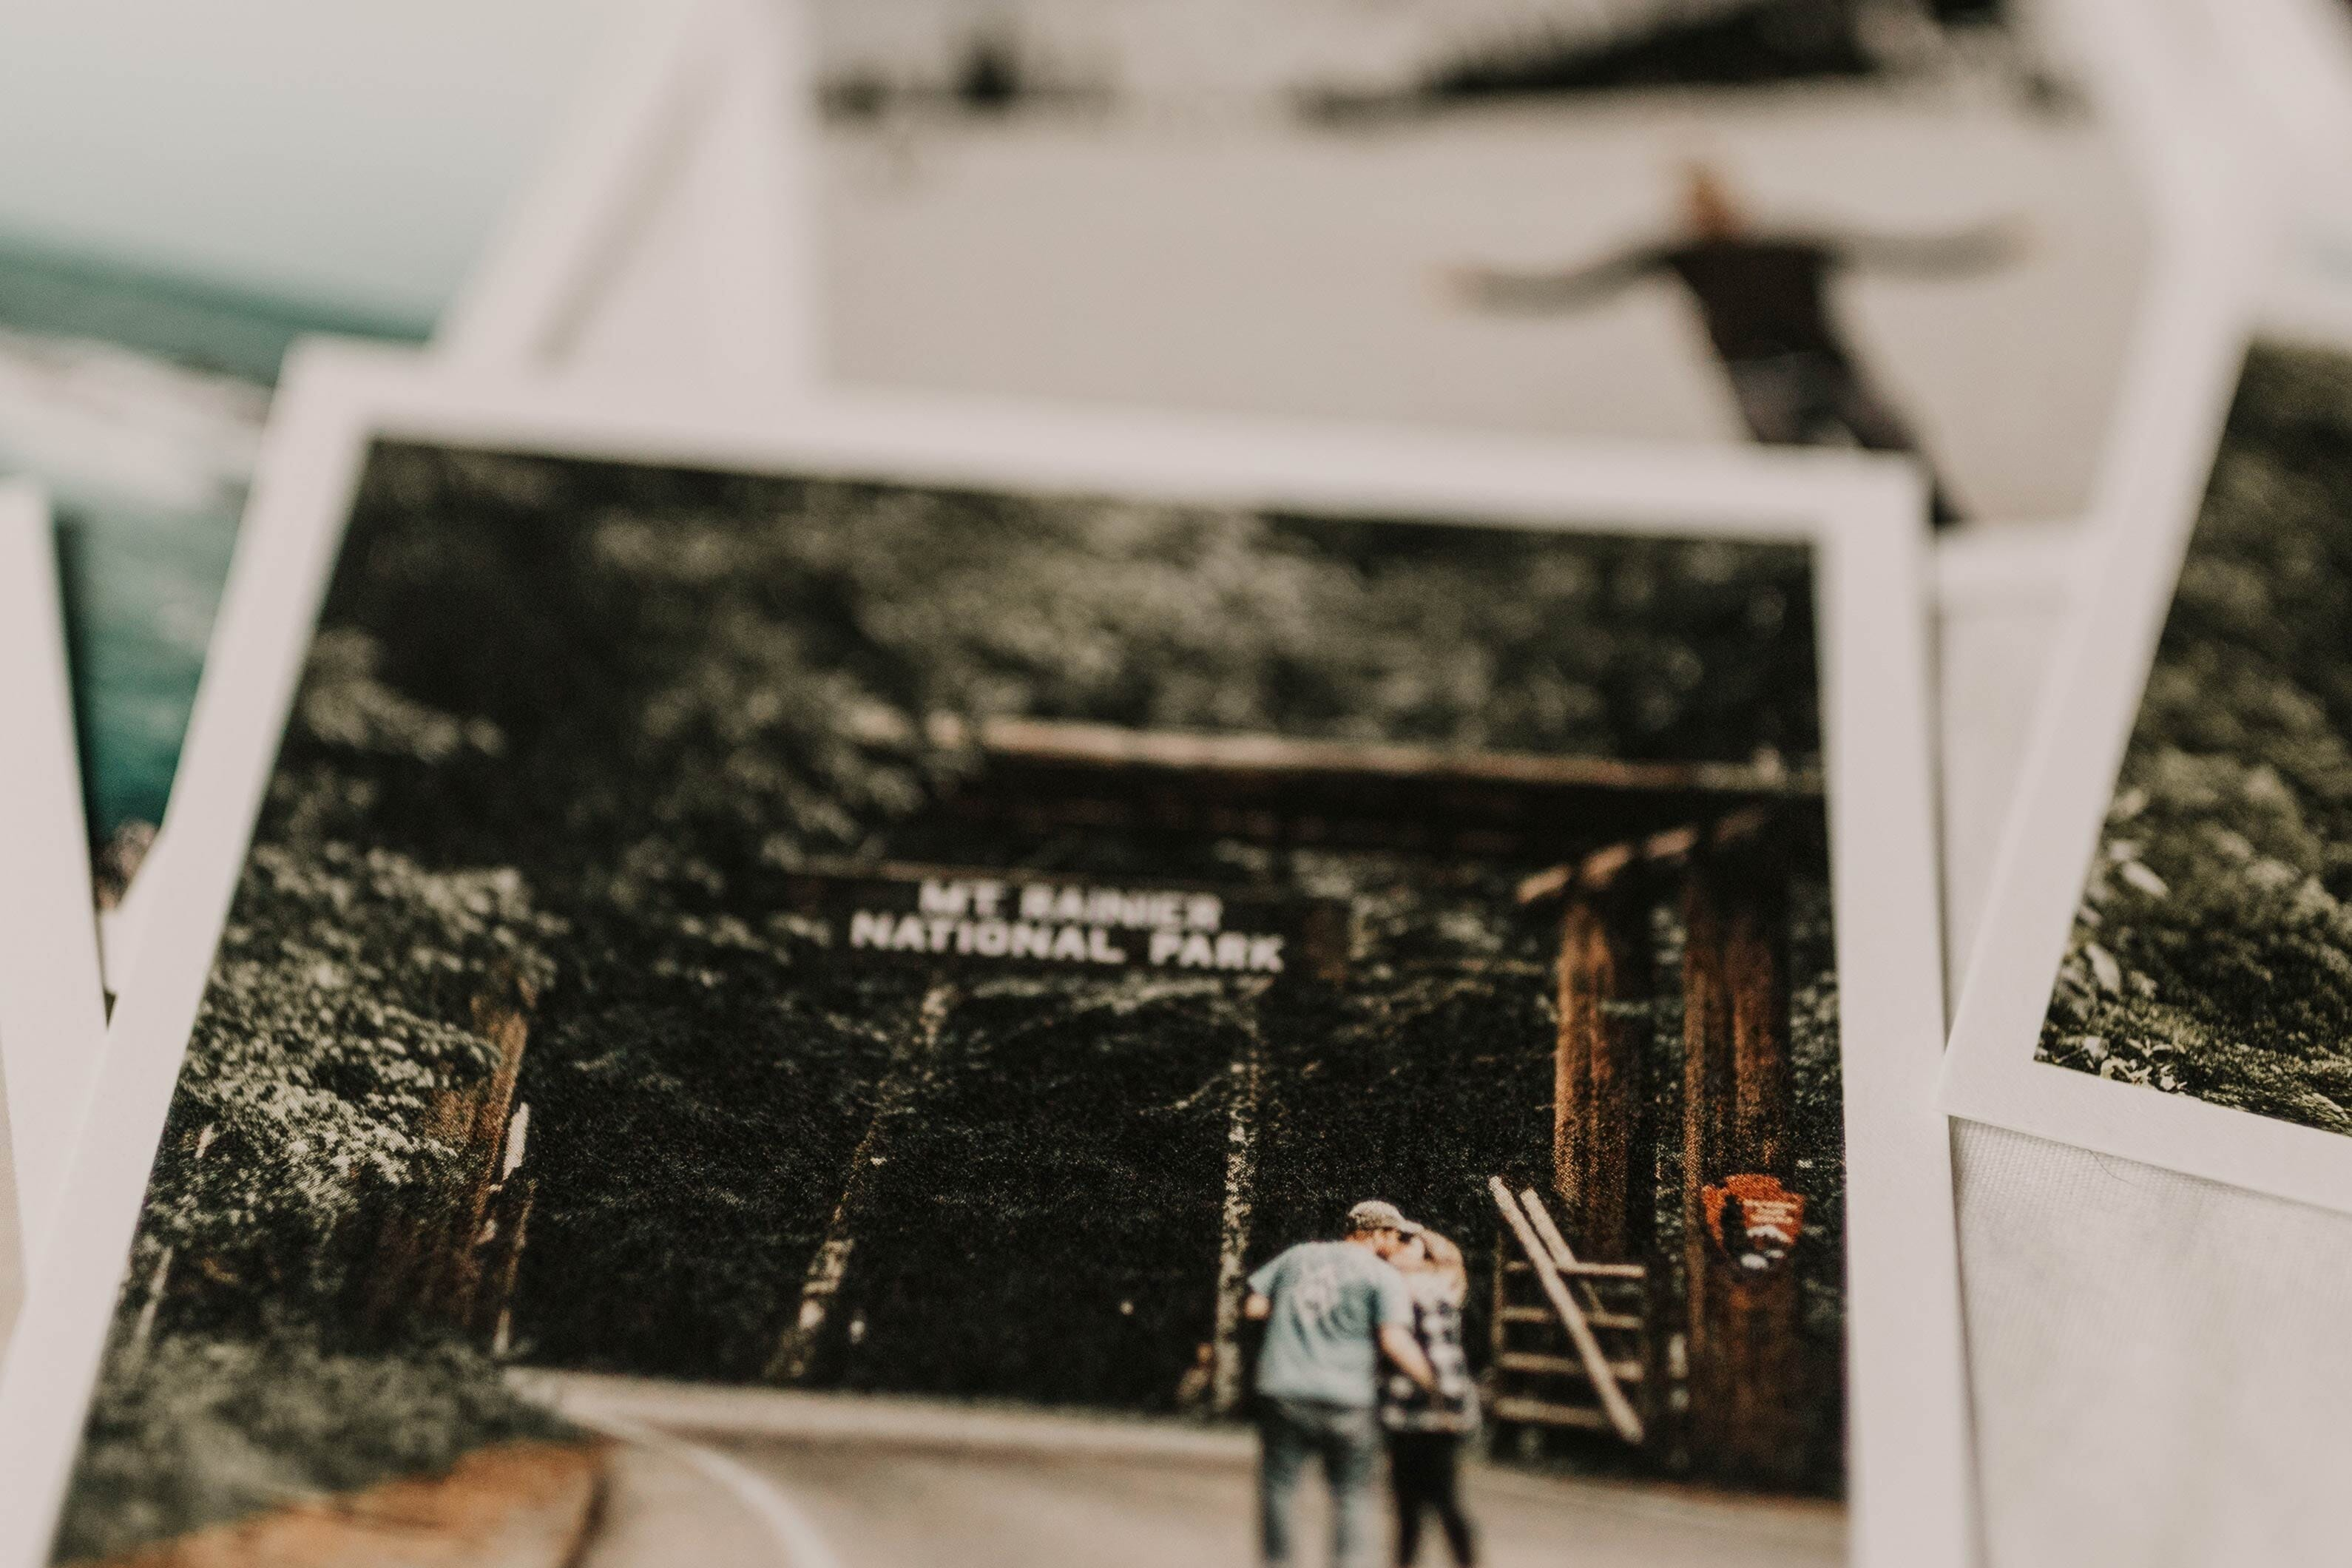 Reviewing shutterfly on demand photo prints